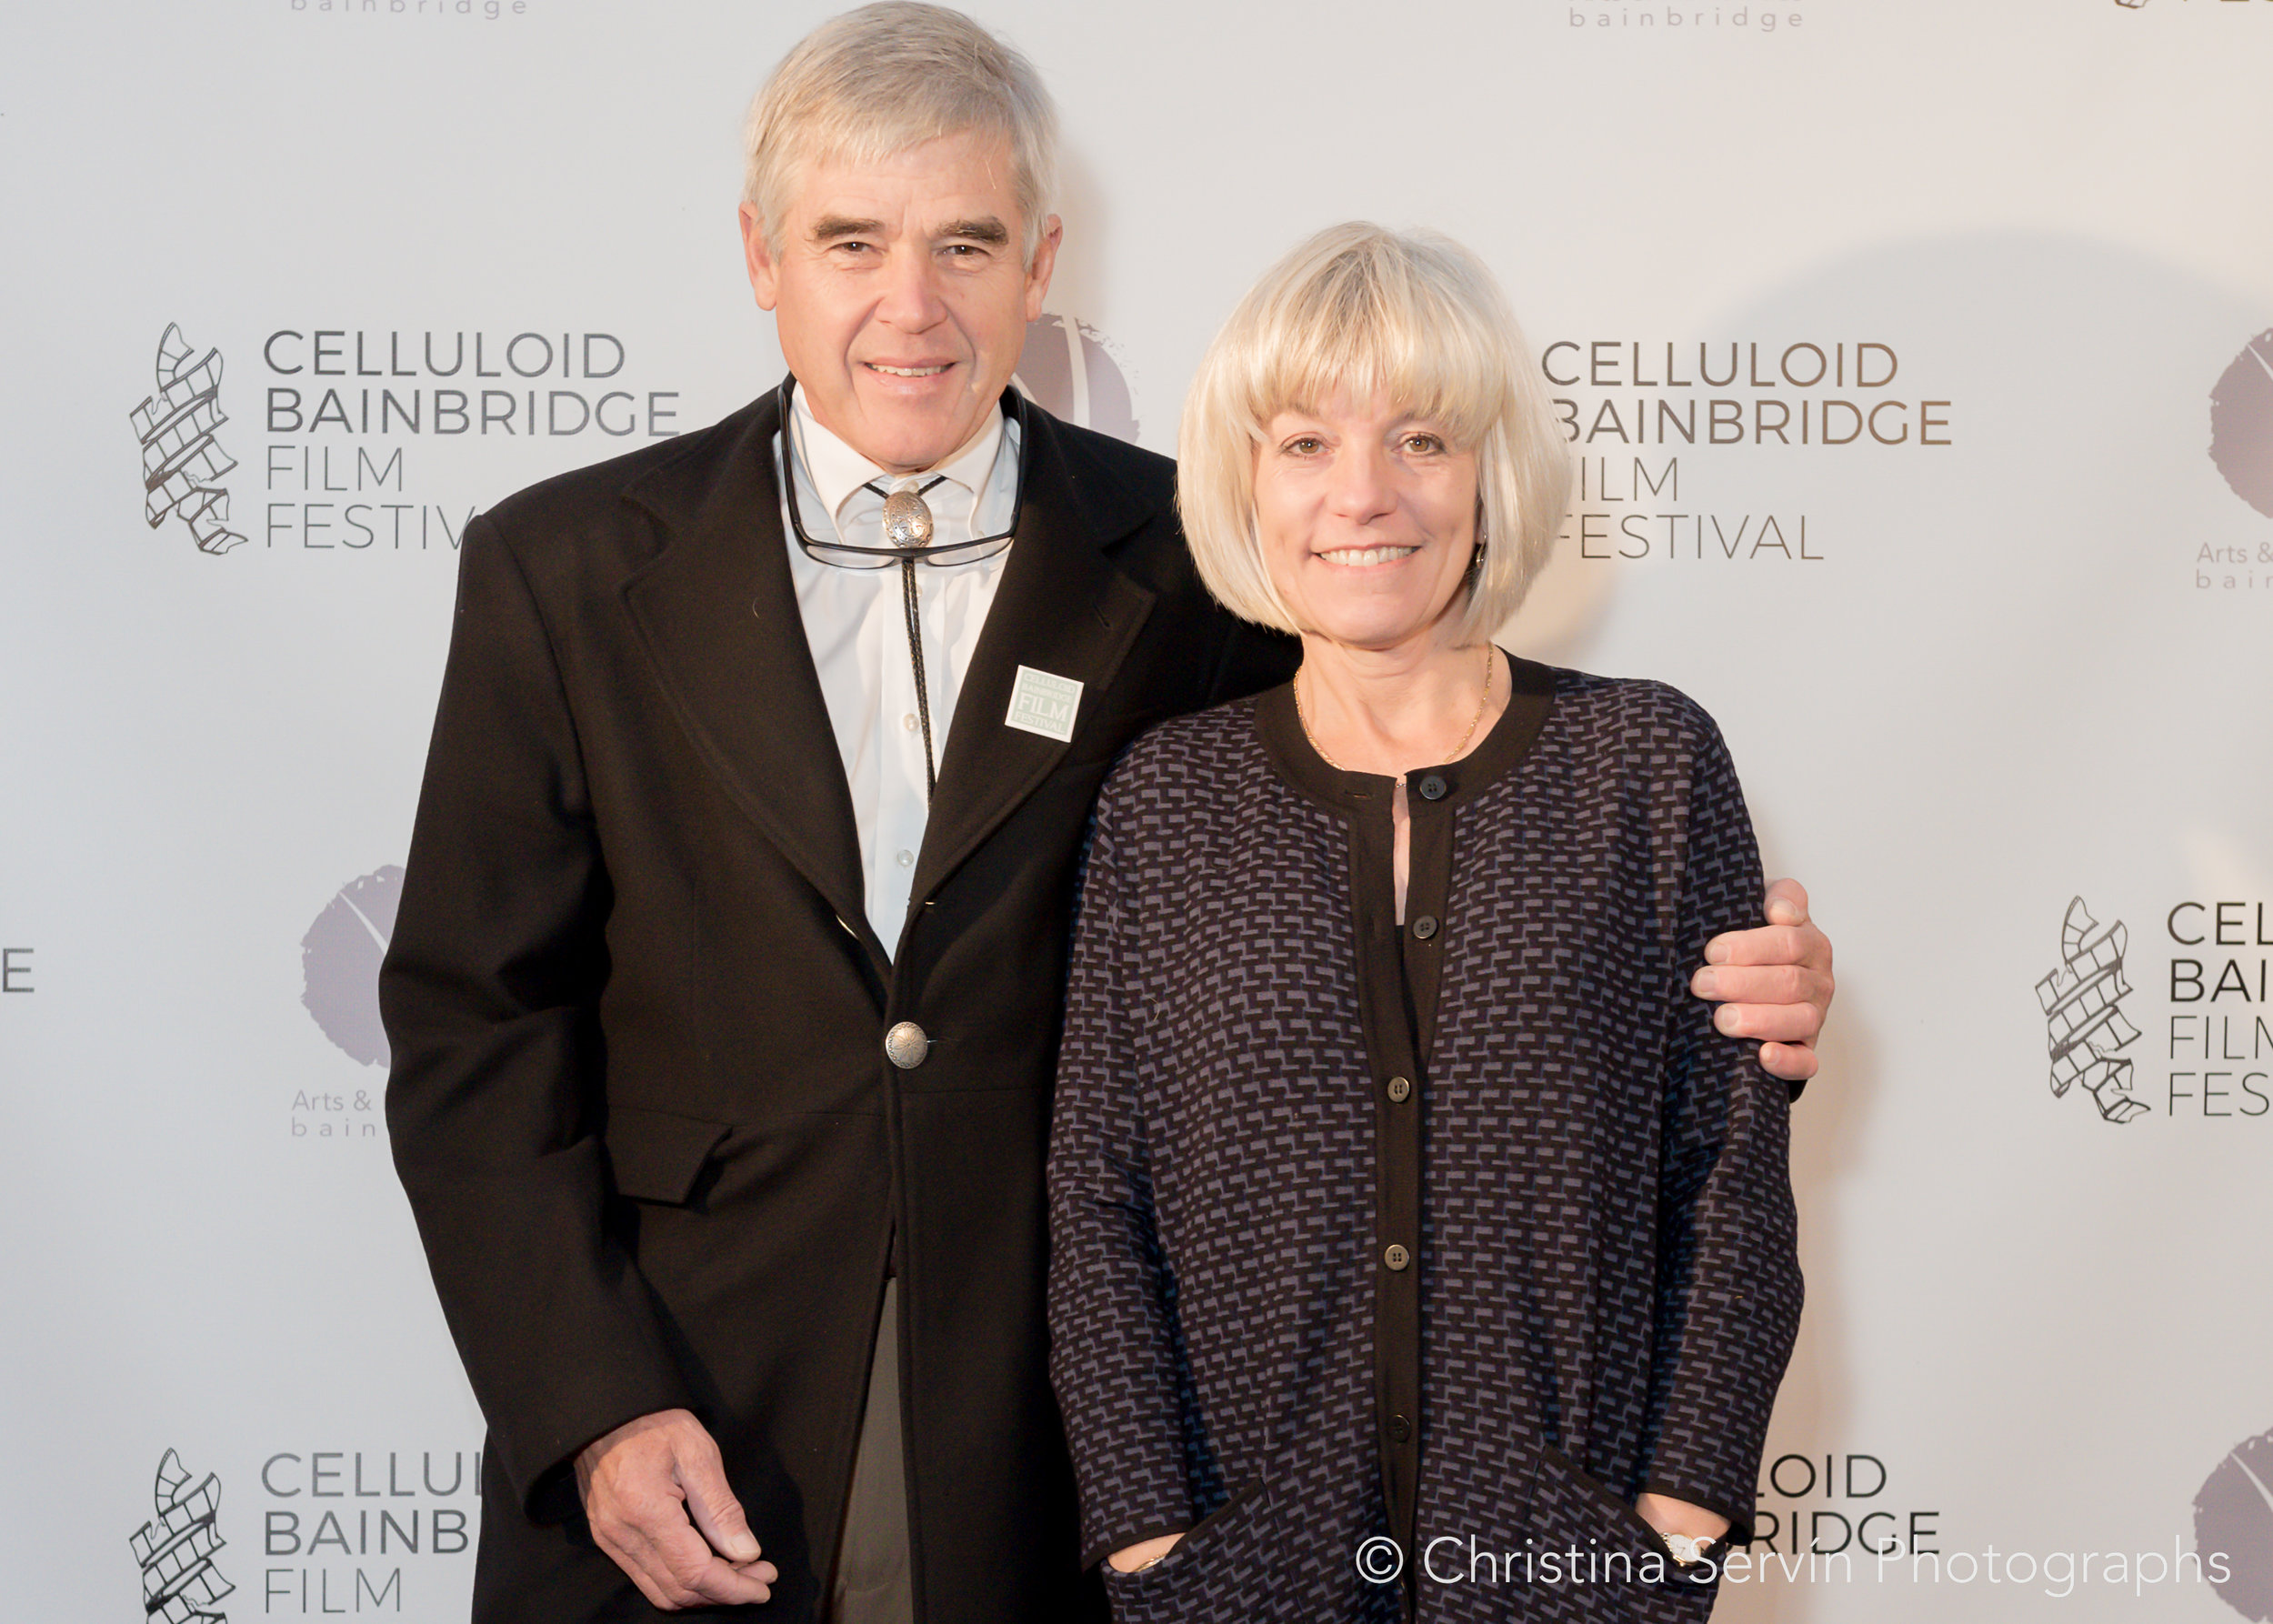 Celluloid Bainbridge Film Festival Bainbridge Island-77.jpg